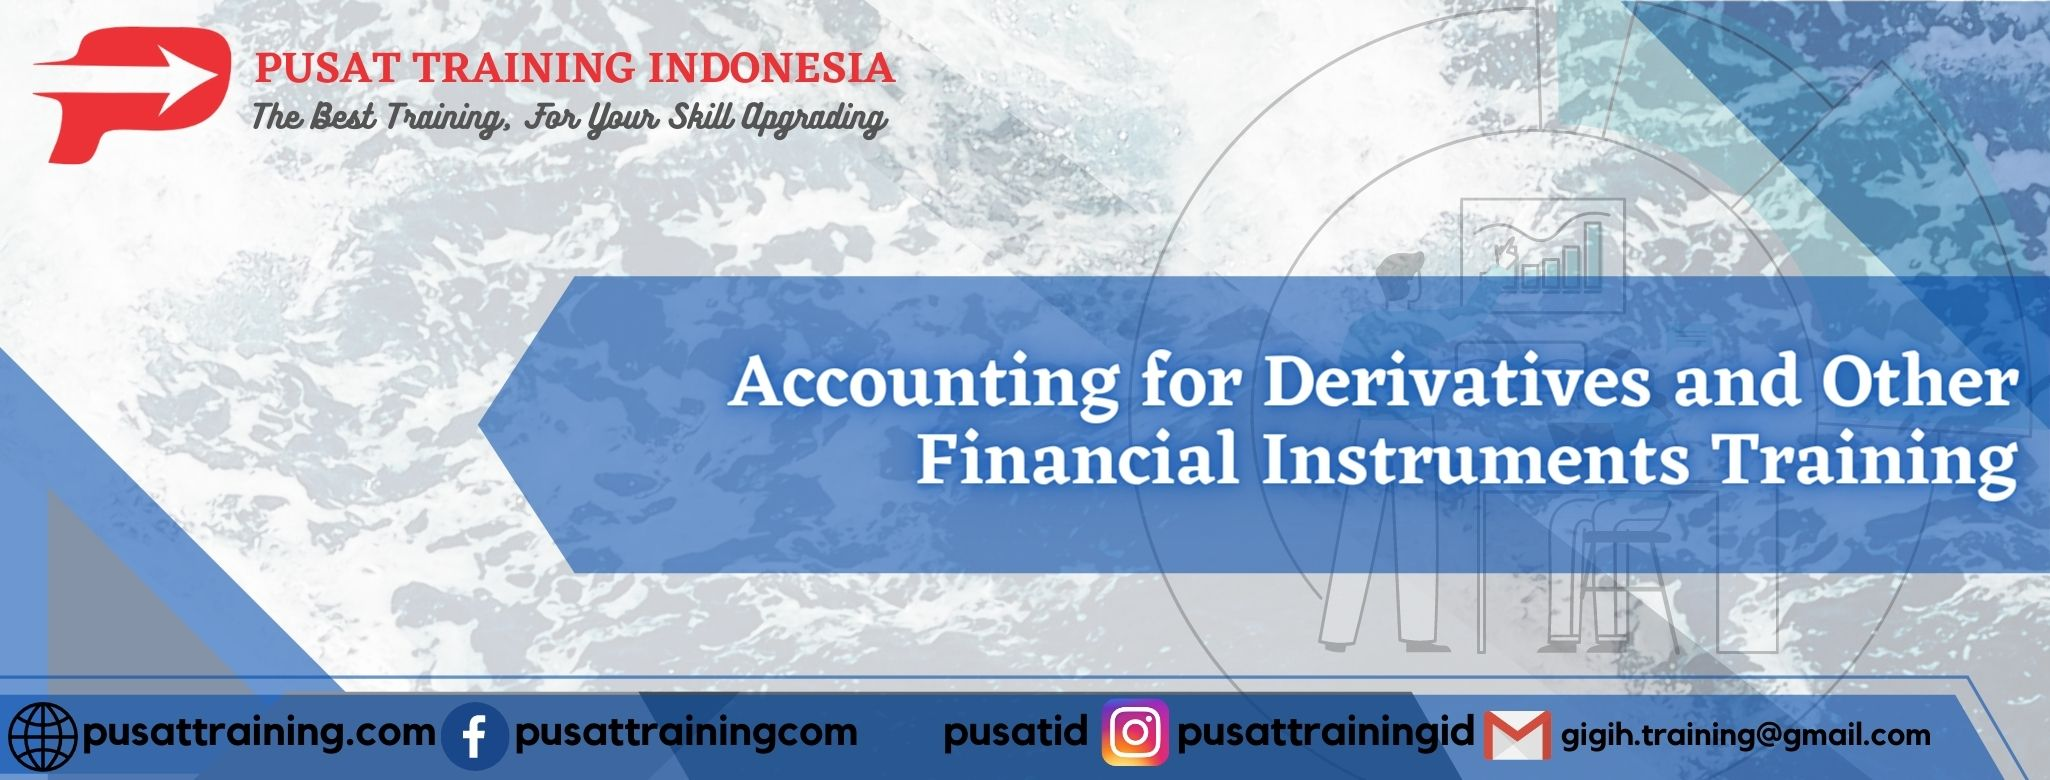 Accounting-for-Derivatives-and-Other-Financial-Instruments-Training